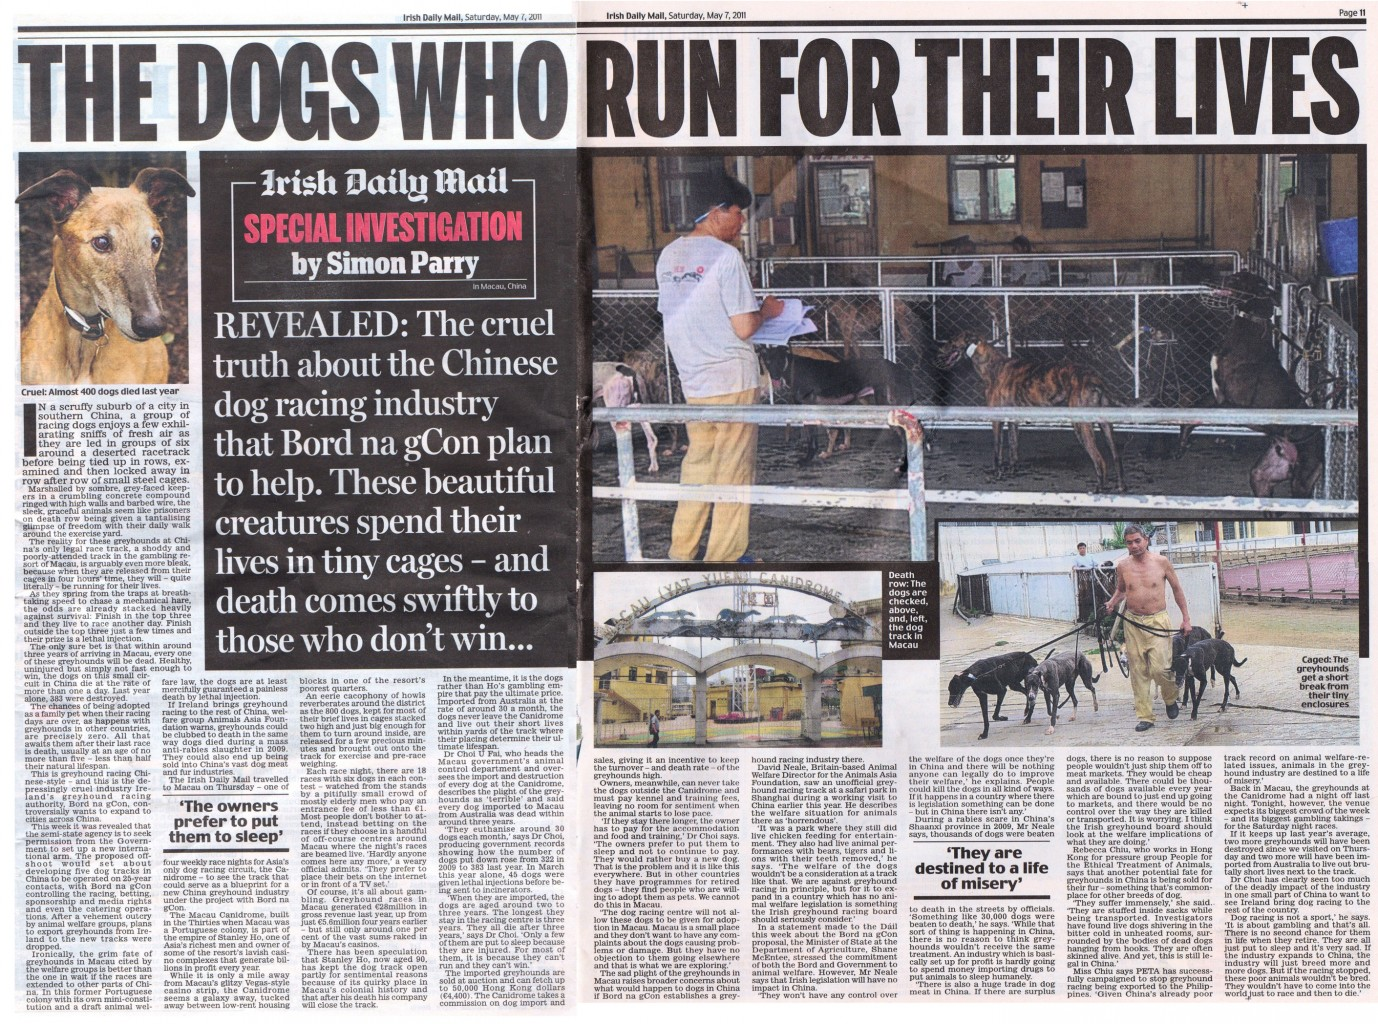 The Dogs who rund for their lives v3